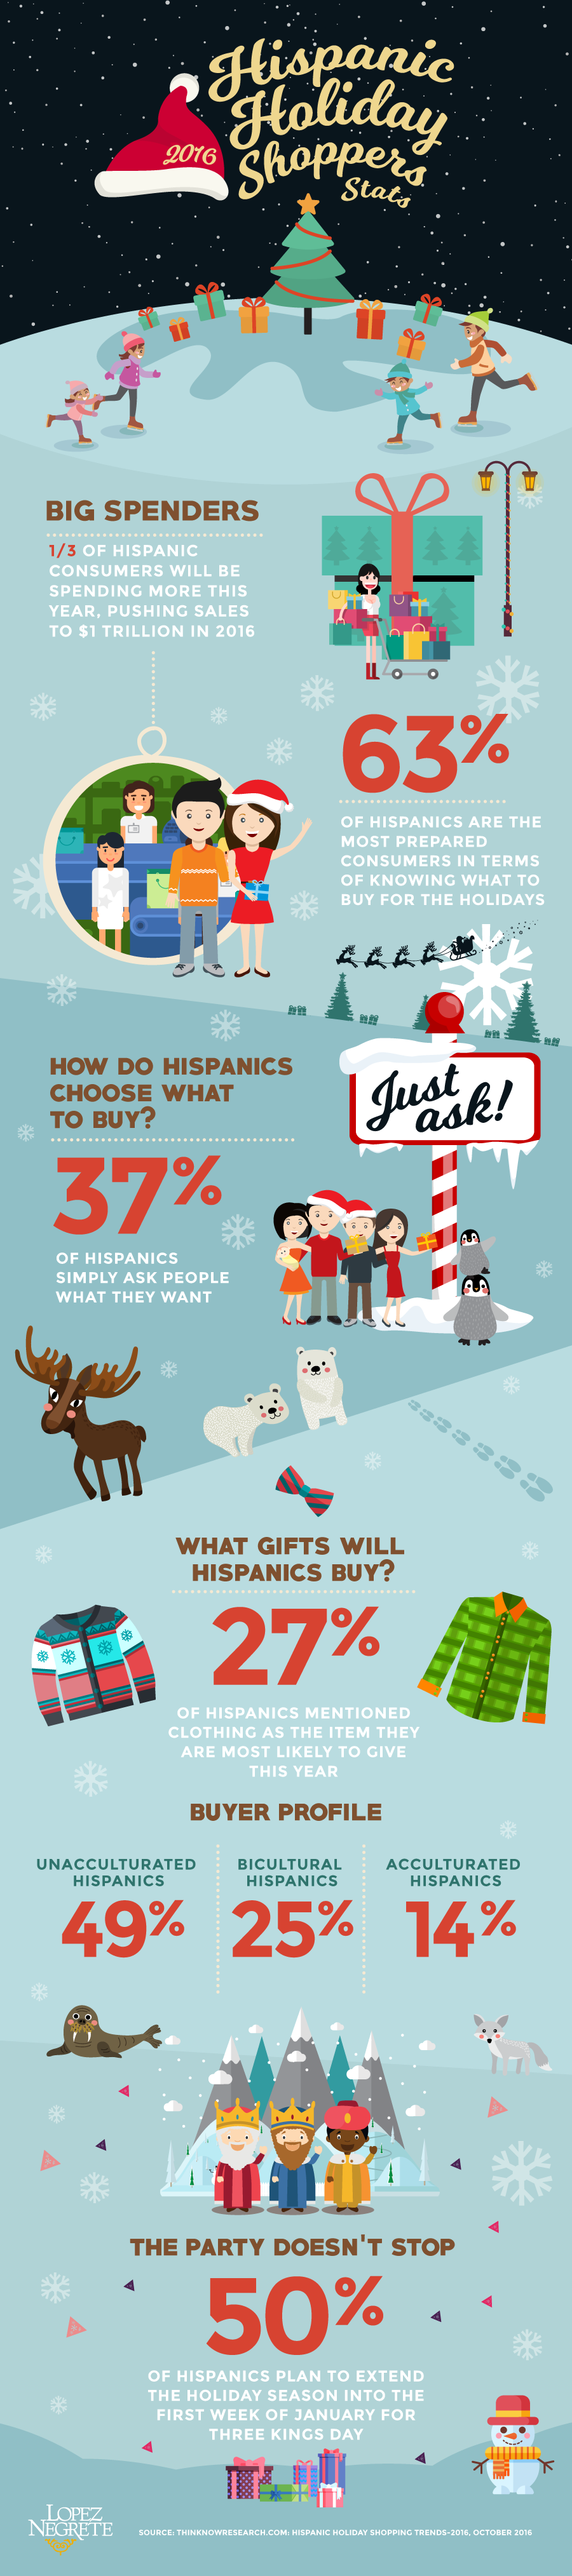 sp_xmas_shop_infographic-final